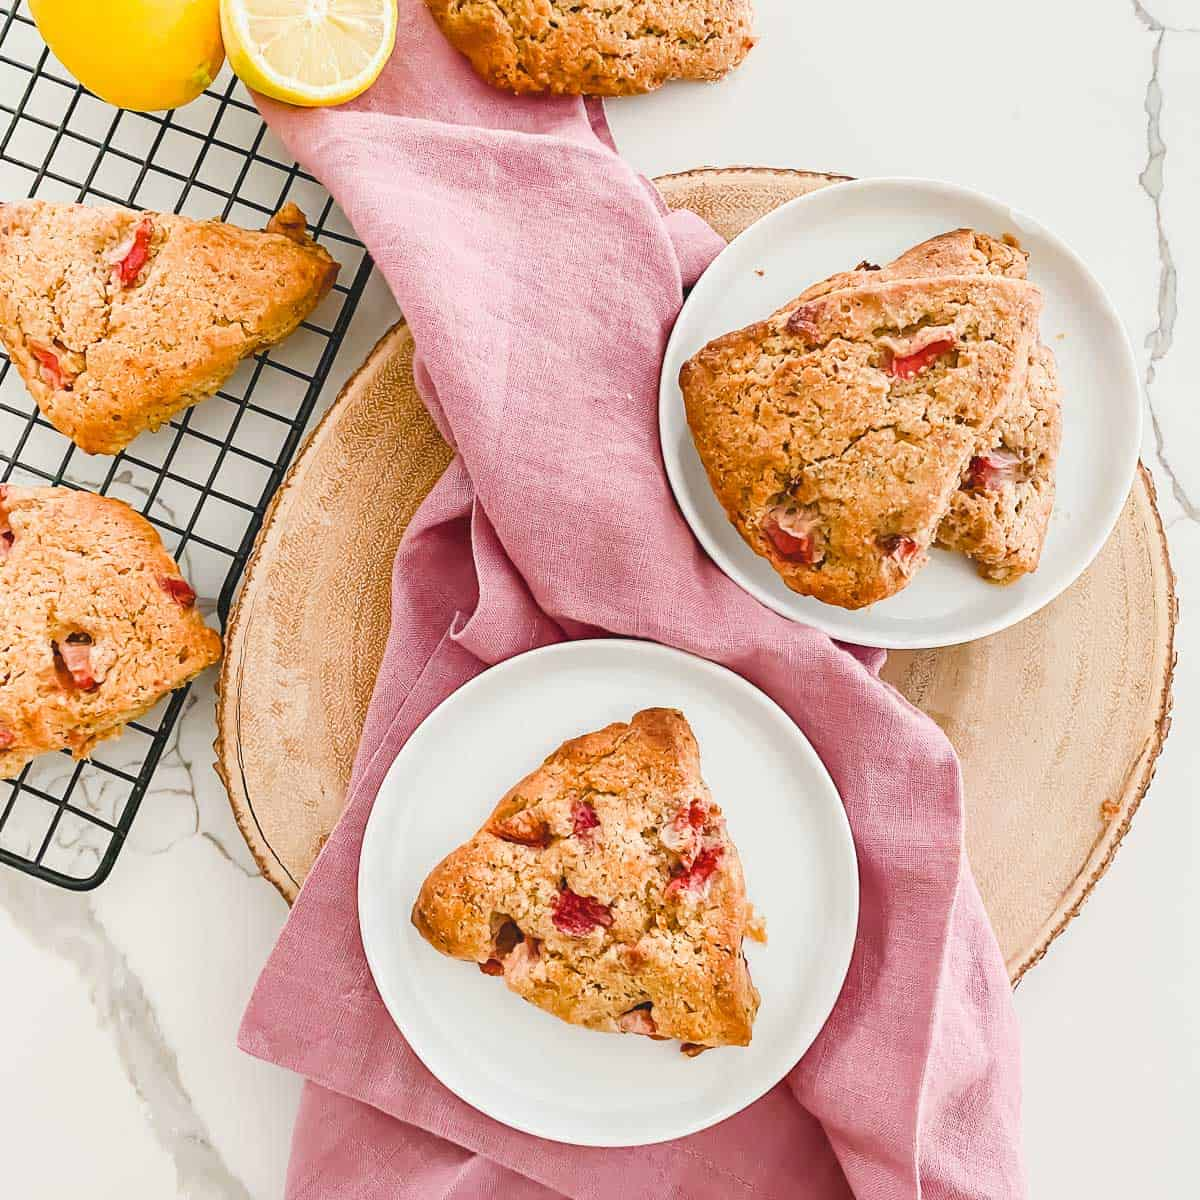 Strawberry lemon scones are great for breakfast or an afternoon snack with their bright lemon and sweet strawberry flavor.